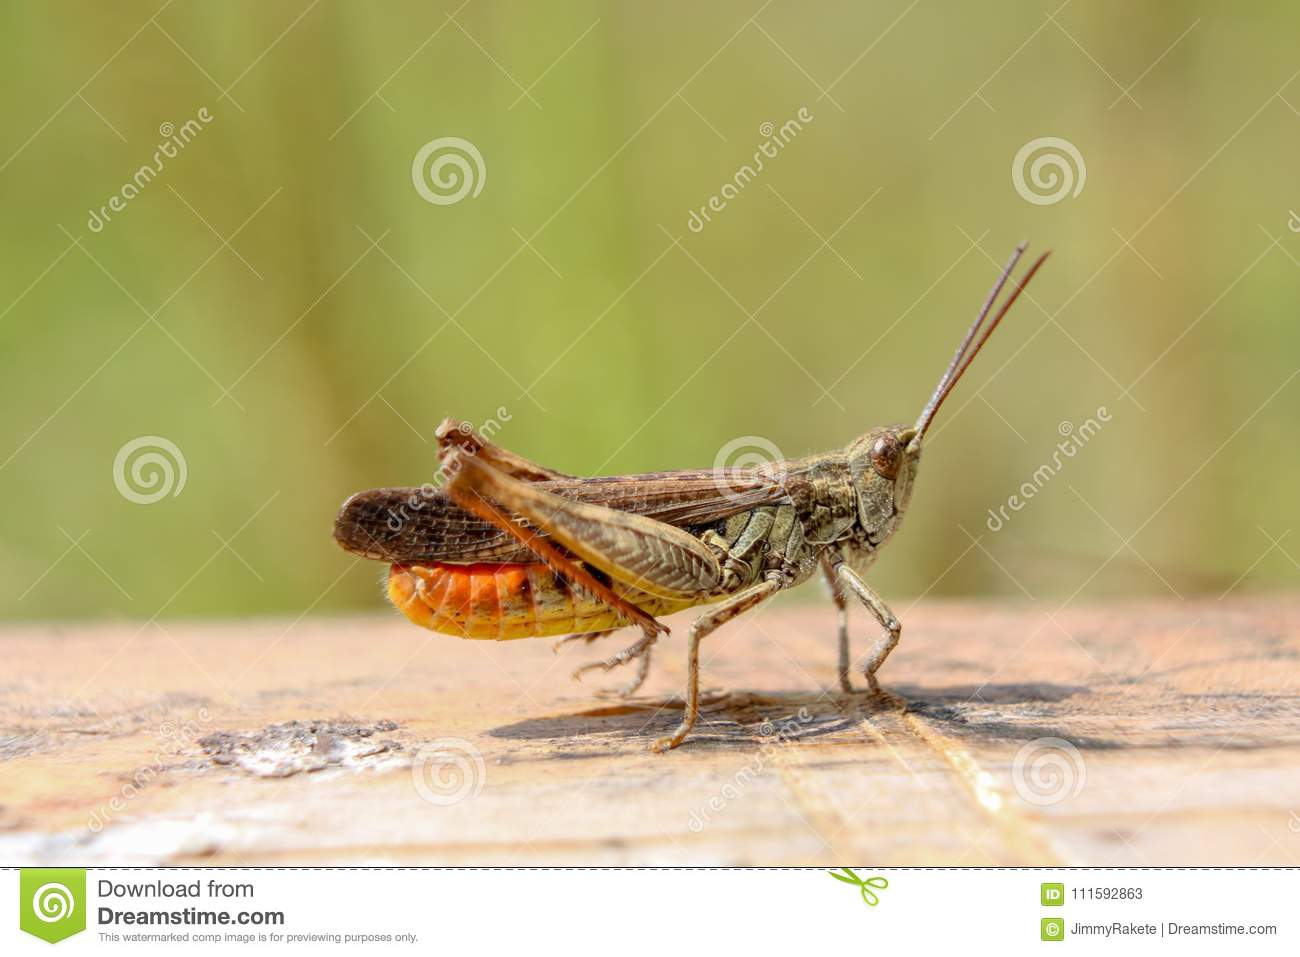 chirping orange and brown grasshopper stock image image of nature